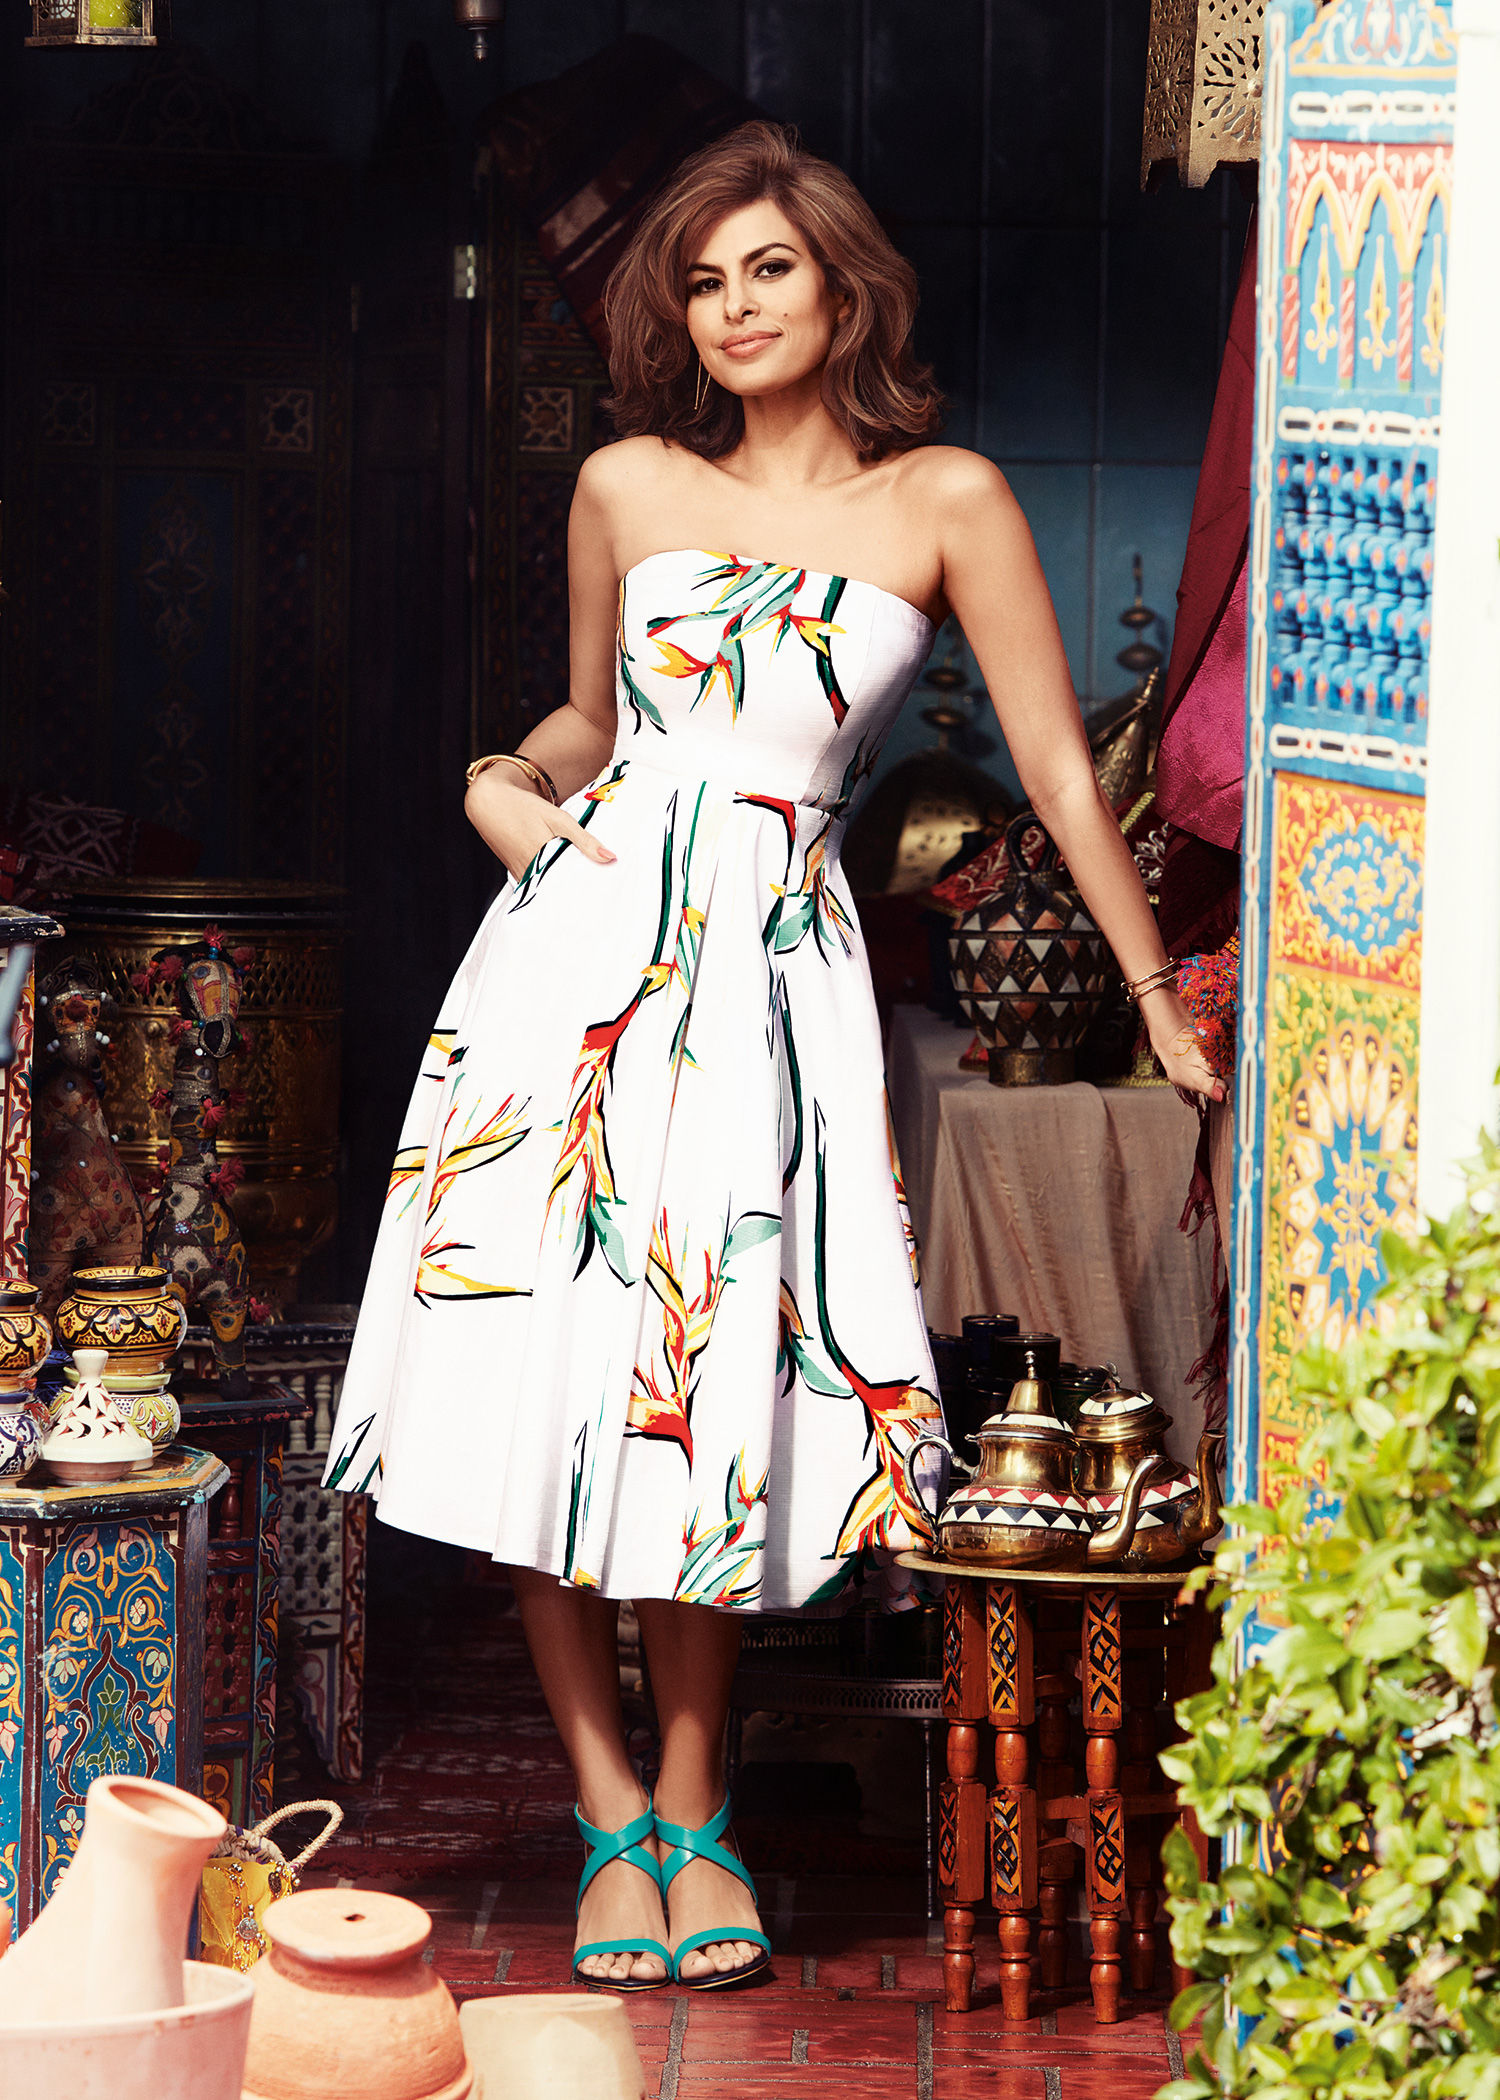 Eva mendes new york and company 39 s eva mendes collection for New york and company dress shirts